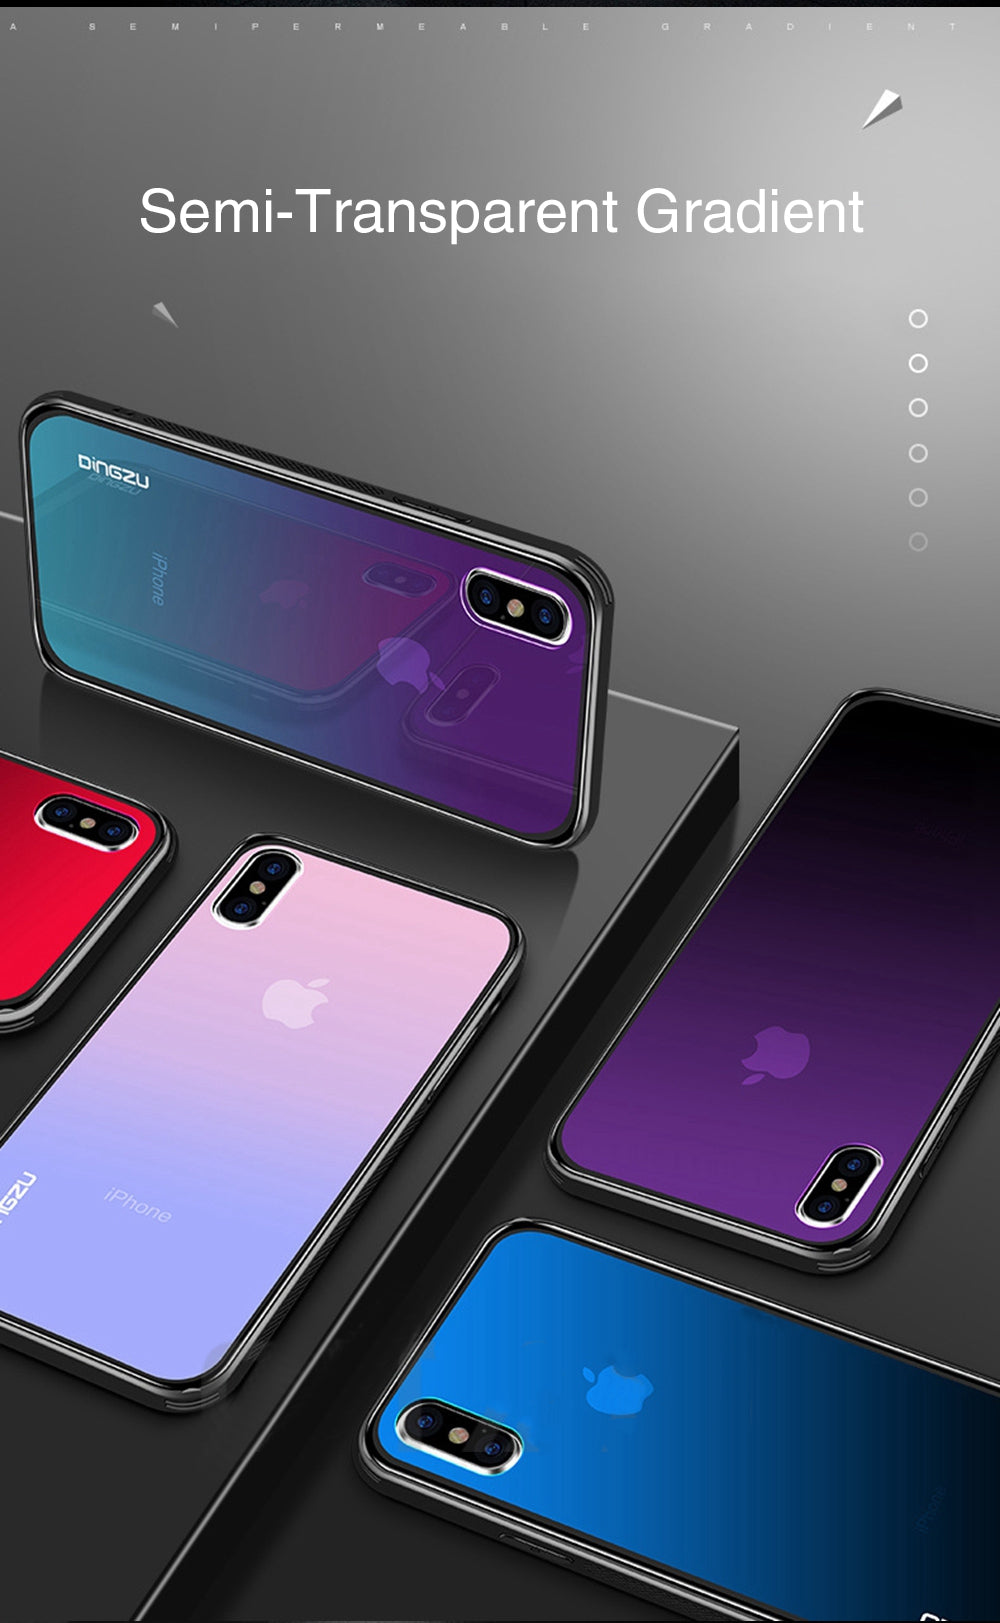 HD Gradient Tempered Glass Phone Case For iPhone XR XS MAX X 8 7 6 6S Plus Hard Shell Protective Soft TPU Bumper Cover Fitted Case For iPhone